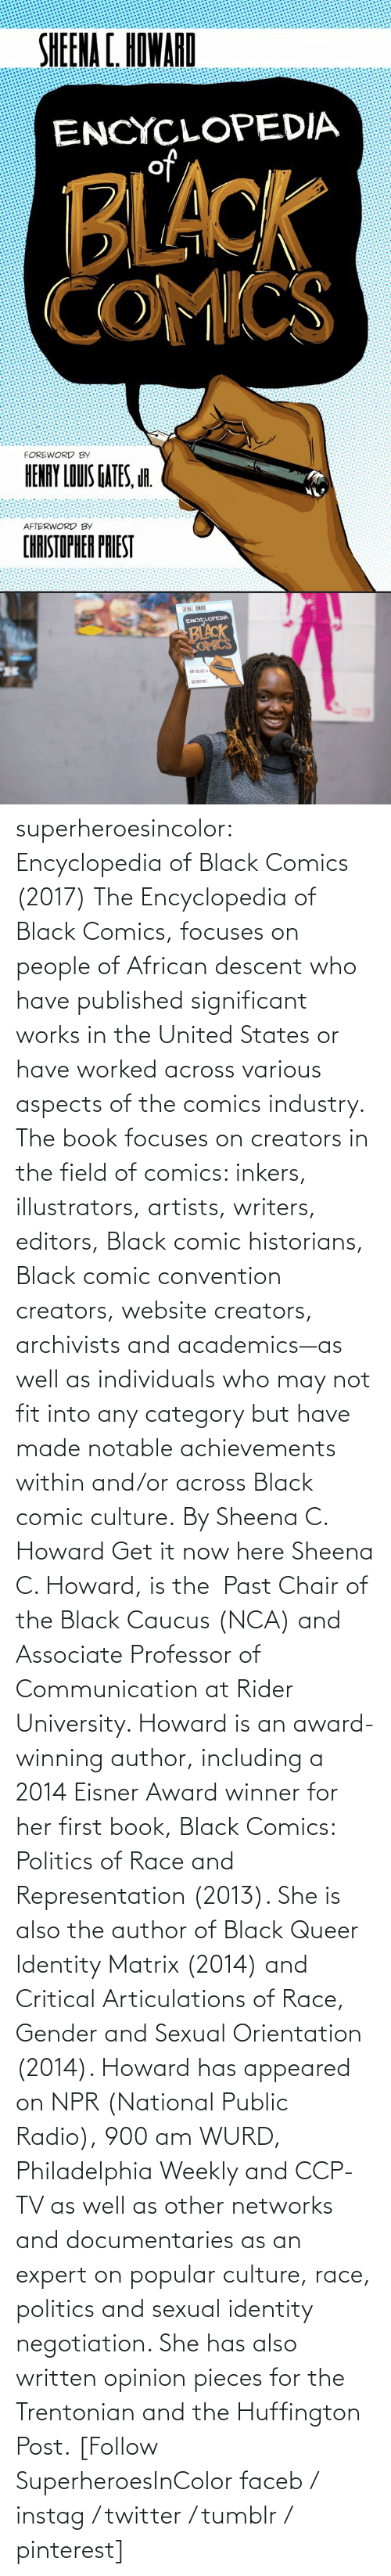 Comics: superheroesincolor: Encyclopedia of Black Comics (2017) The Encyclopedia of Black Comics, focuses on people of African descent who have published significant works in the United States or have worked across various aspects of the comics industry.  The book focuses on creators in the field of comics: inkers, illustrators, artists, writers, editors, Black comic historians, Black comic convention creators, website creators, archivists and academics—as well as individuals who may not fit into any category but have made notable achievements within and/or across Black comic culture. By Sheena C. Howard Get it now here  Sheena C. Howard, is the  Past Chair of the Black Caucus (NCA) and Associate Professor of Communication at Rider University. Howard is an award-winning author, including a 2014 Eisner Award winner for her first book, Black Comics: Politics of Race and Representation (2013). She is also the author of Black Queer Identity Matrix (2014) and Critical Articulations of Race, Gender and Sexual Orientation (2014). Howard has appeared on NPR (National Public Radio), 900 am WURD, Philadelphia Weekly and CCP-TV as well as other networks and documentaries as an expert on popular culture, race, politics and sexual identity negotiation. She has also written opinion pieces for the Trentonian and the Huffington Post.   [Follow SuperheroesInColor faceb / instag / twitter / tumblr / pinterest]